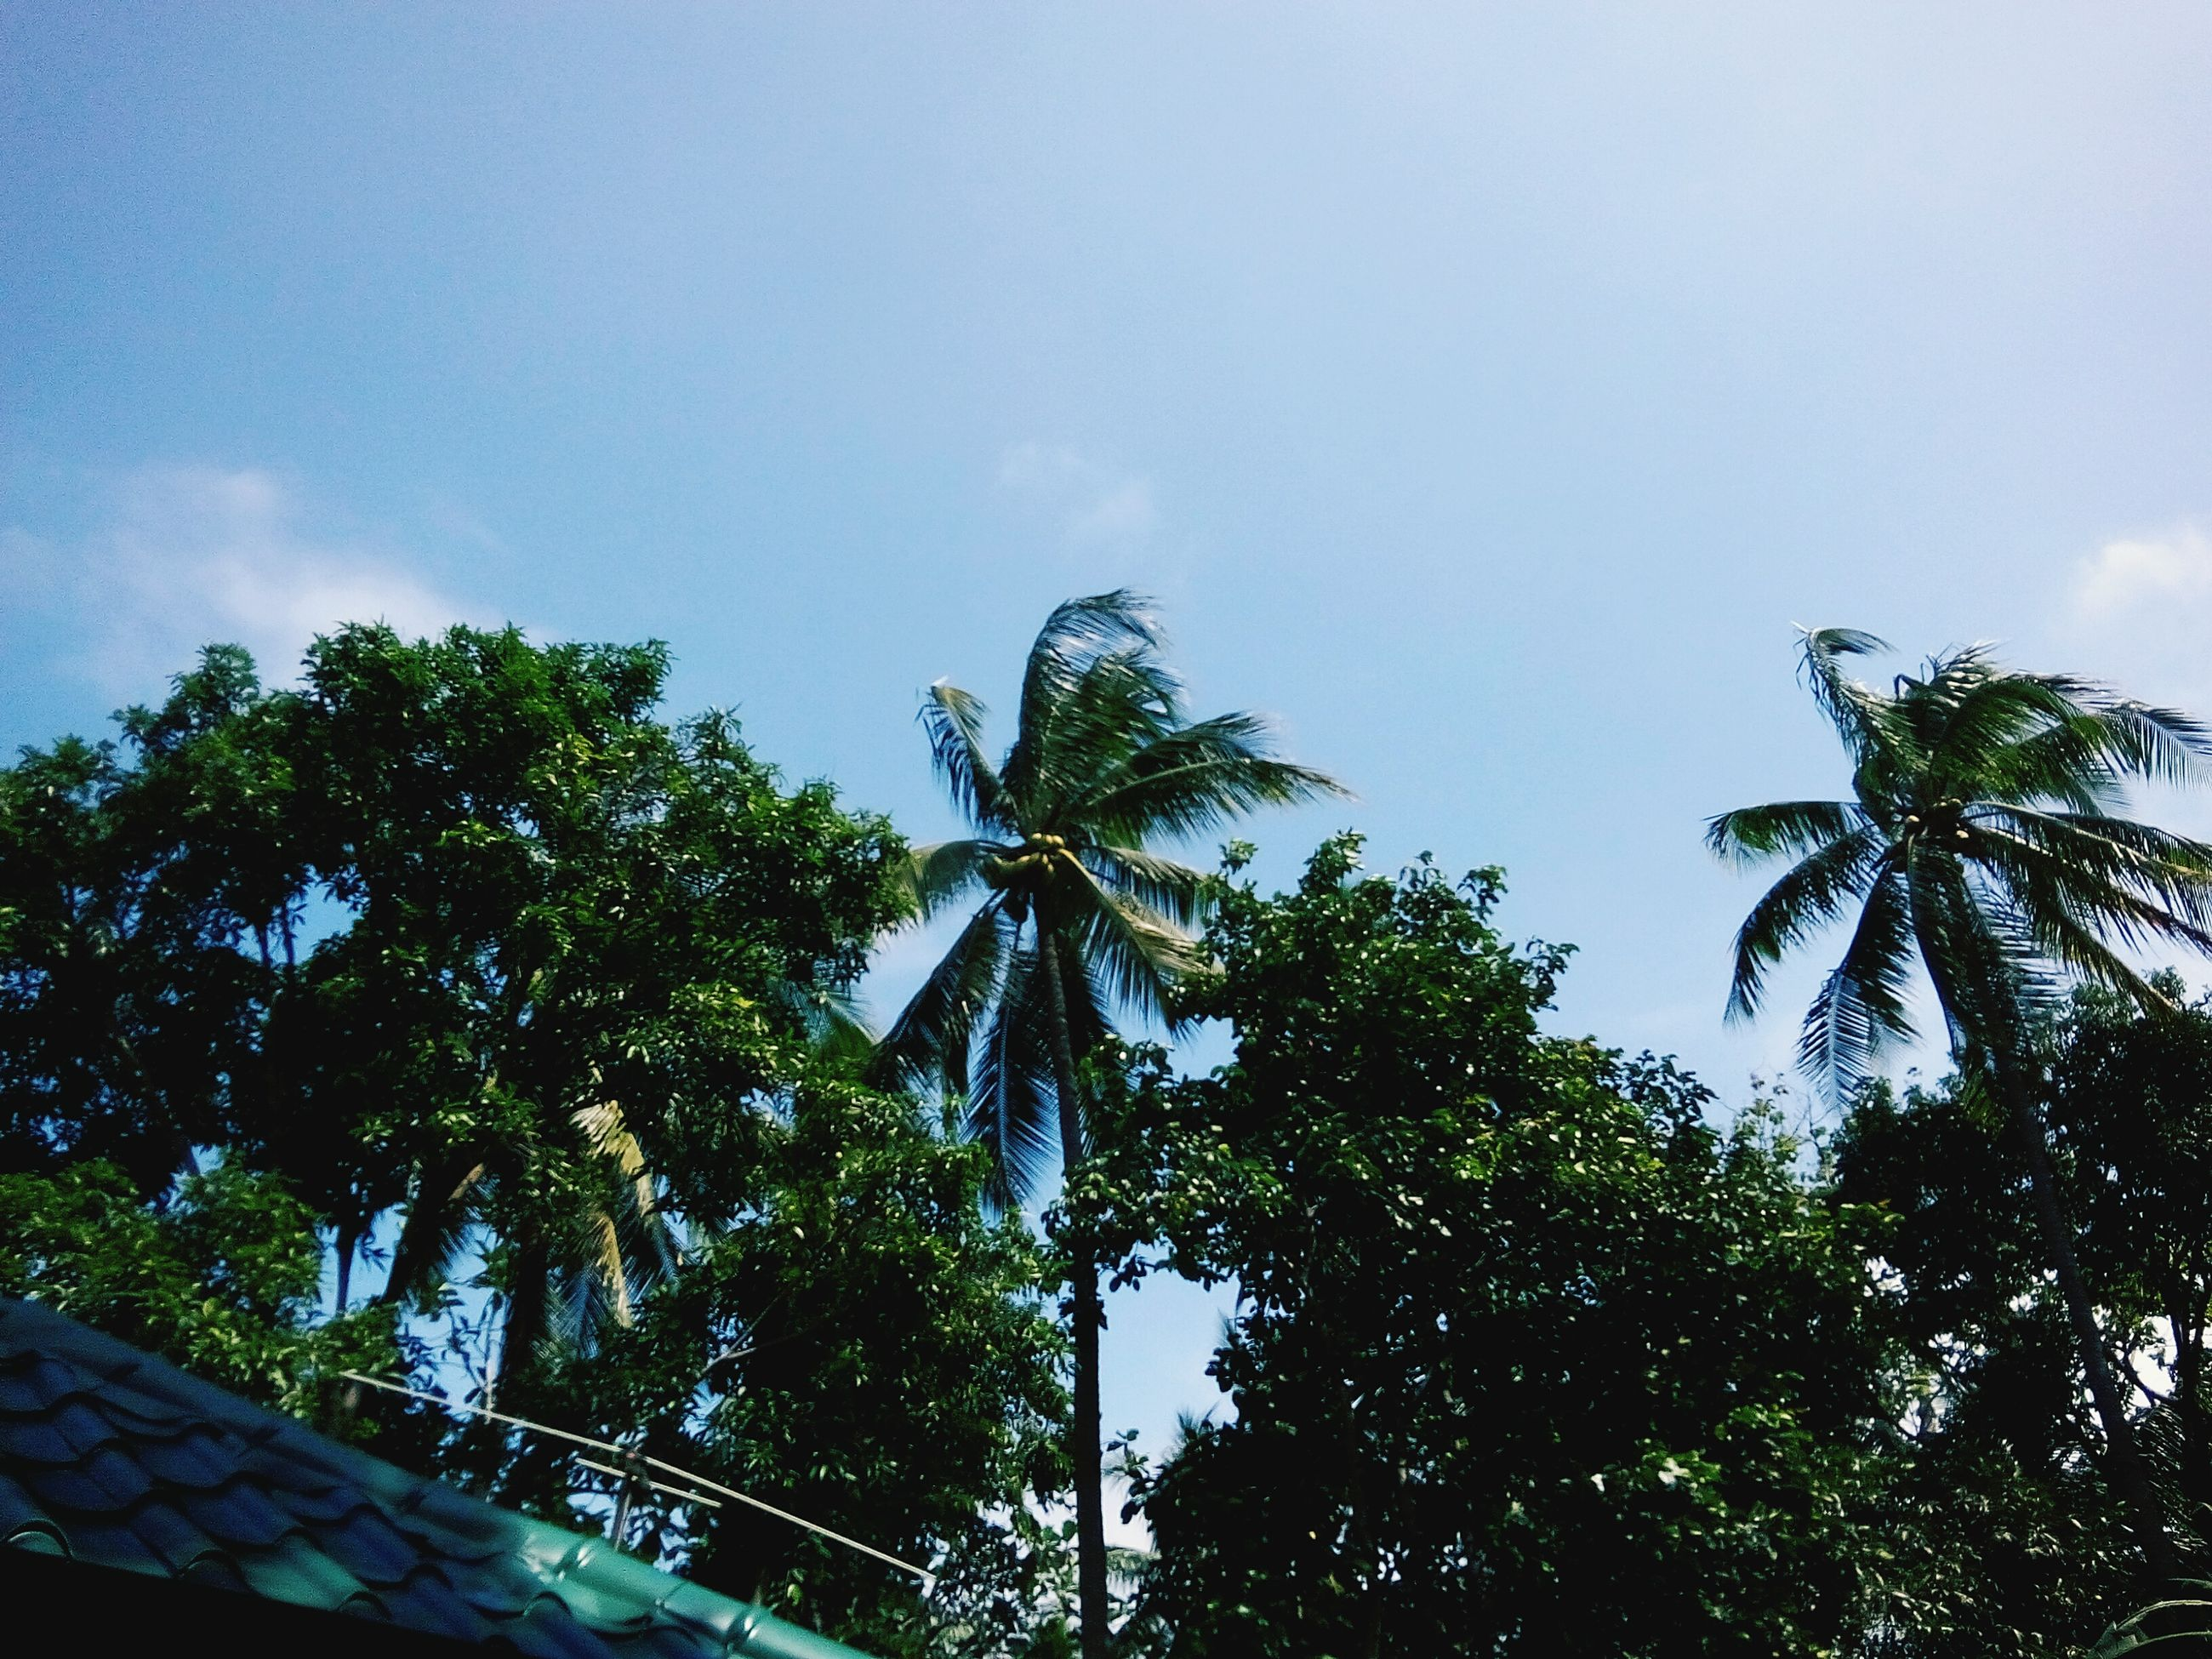 tree, low angle view, palm tree, sky, growth, nature, tranquility, beauty in nature, green color, branch, blue, scenics, day, tree trunk, clear sky, outdoors, tranquil scene, no people, sunlight, tall - high